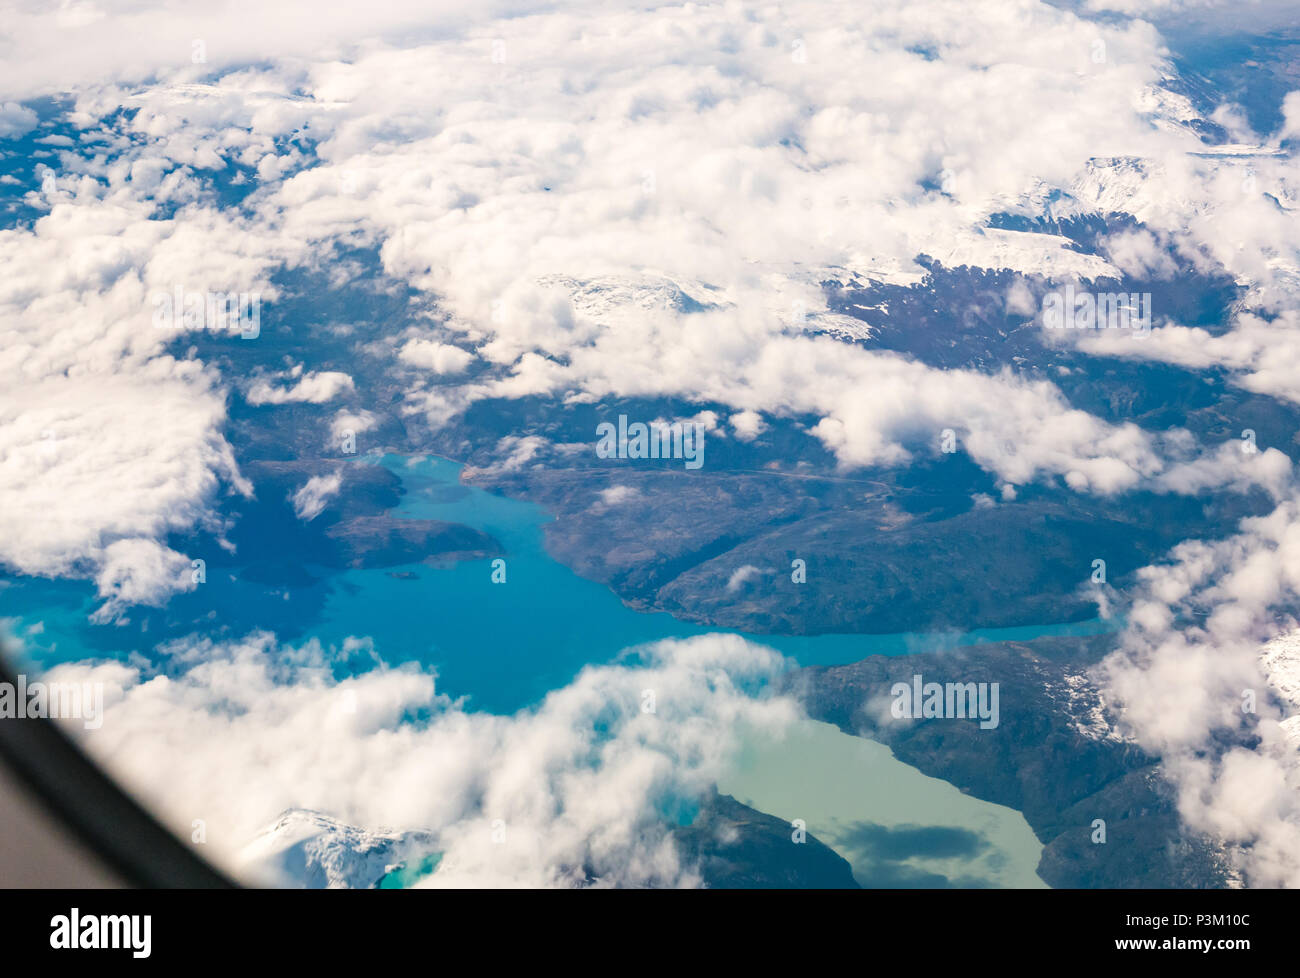 View from aeroplane window of snow covered Andes mountains with lakes of different colours, Southern Patagonian Ice field, Patagonia, Chile - Stock Image